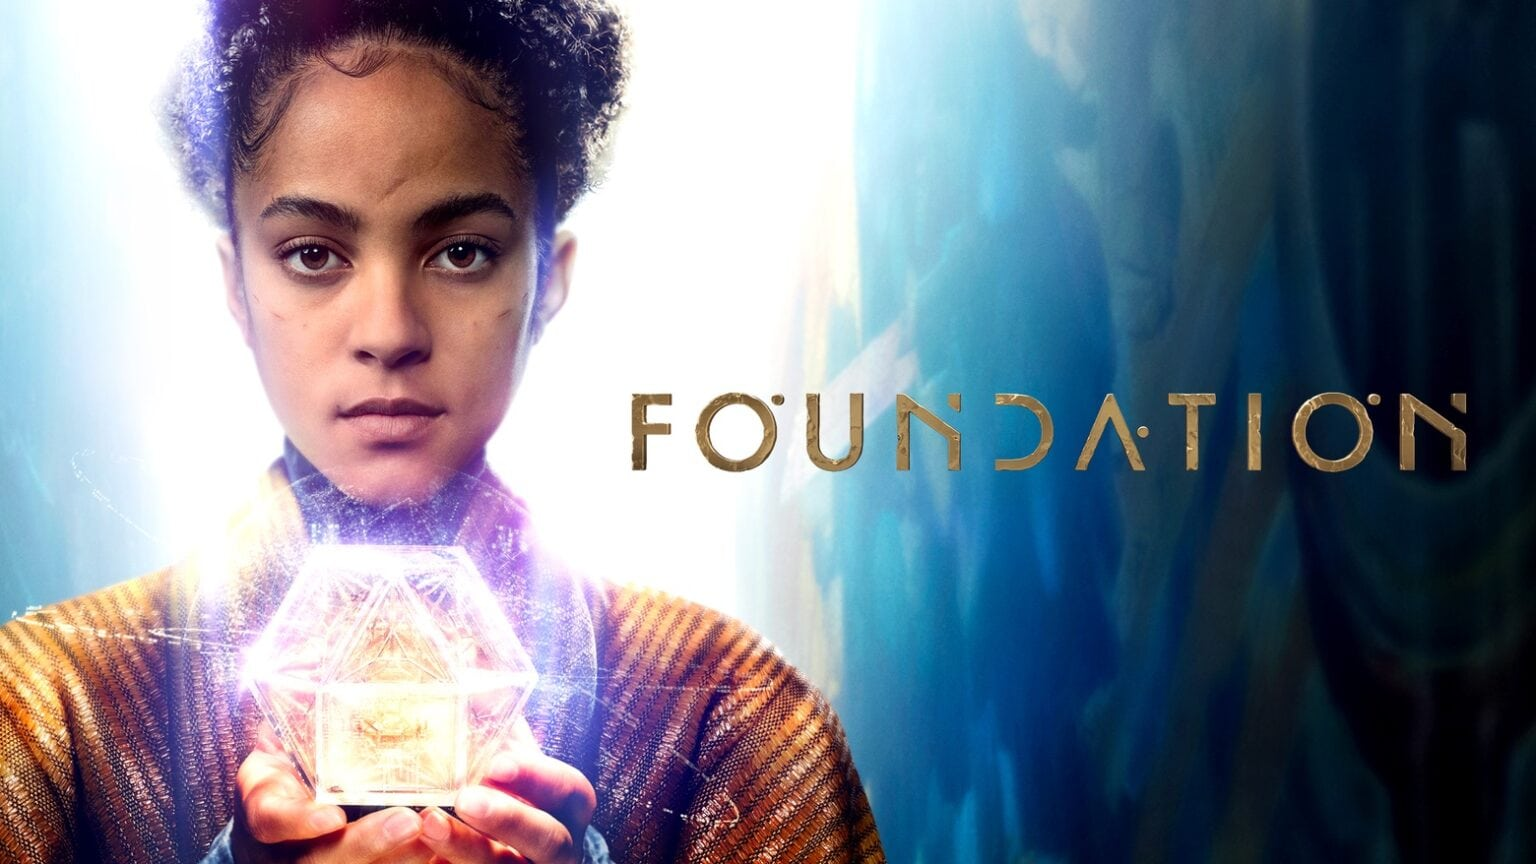 Sci-fi epic 'Foundation' premieres a day early on Apple TV+